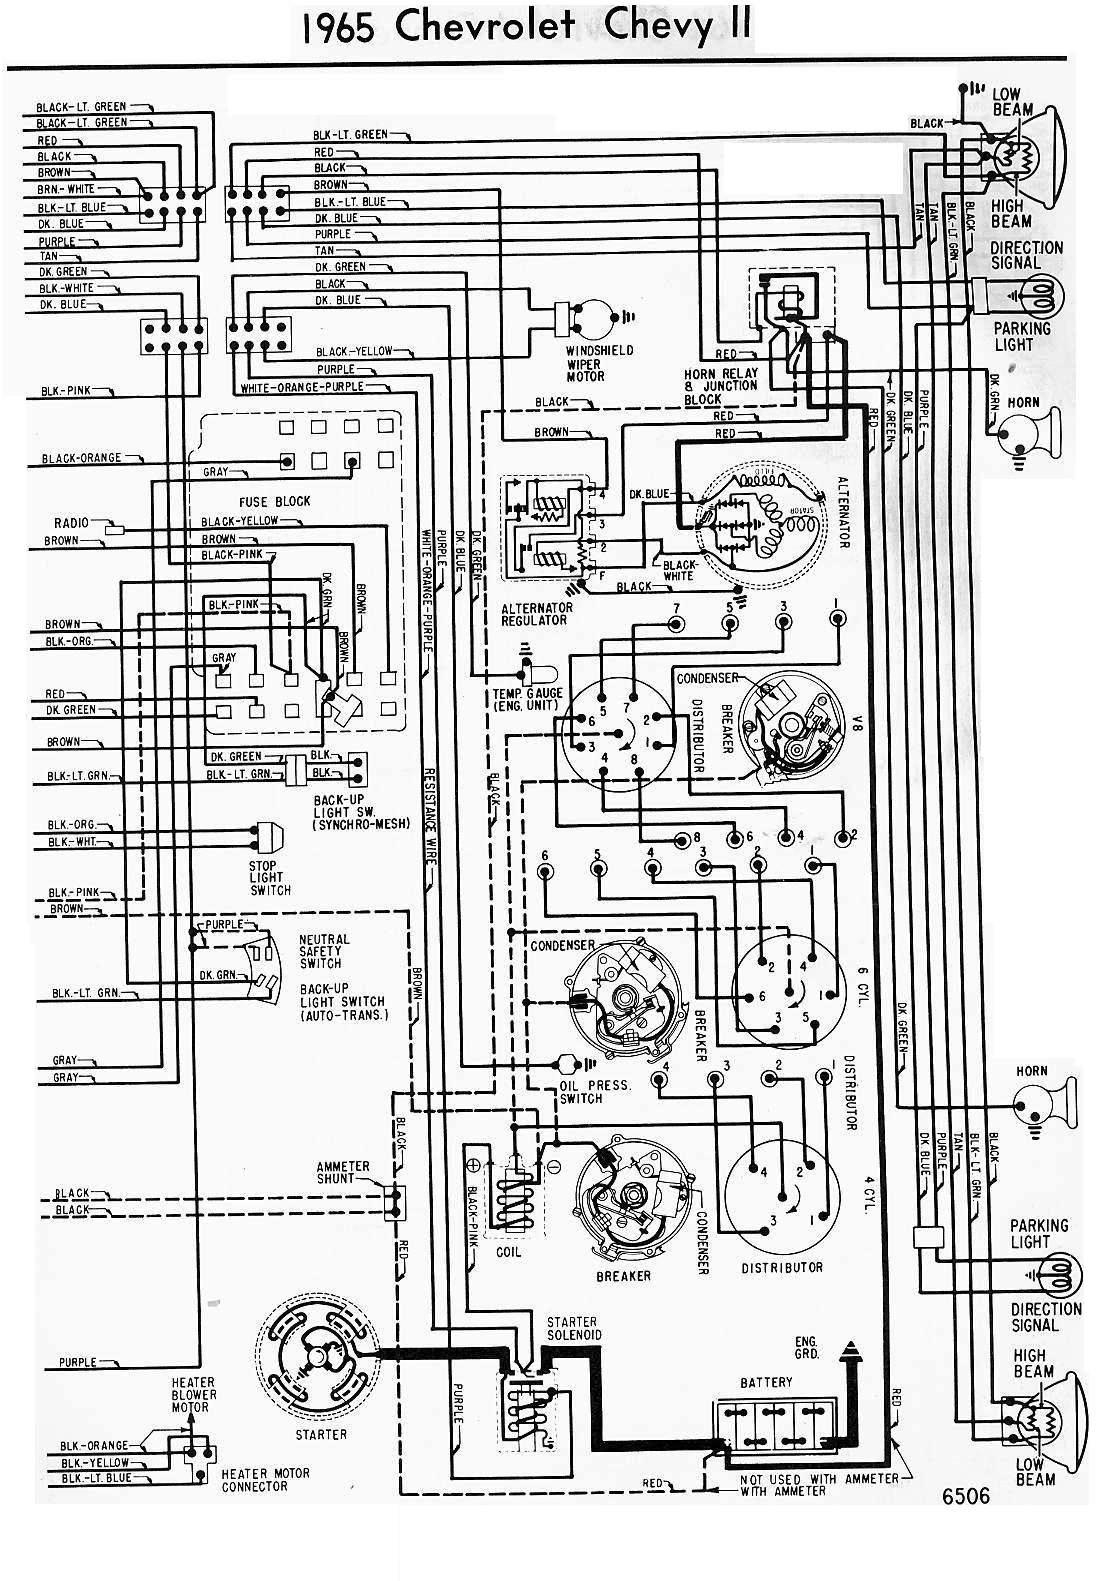 1969 Ford Bronco Alternator Wiring Diagram Trusted Diagrams 1970 1965 Chevrolet Chevy Ii All About Charging System Battery To